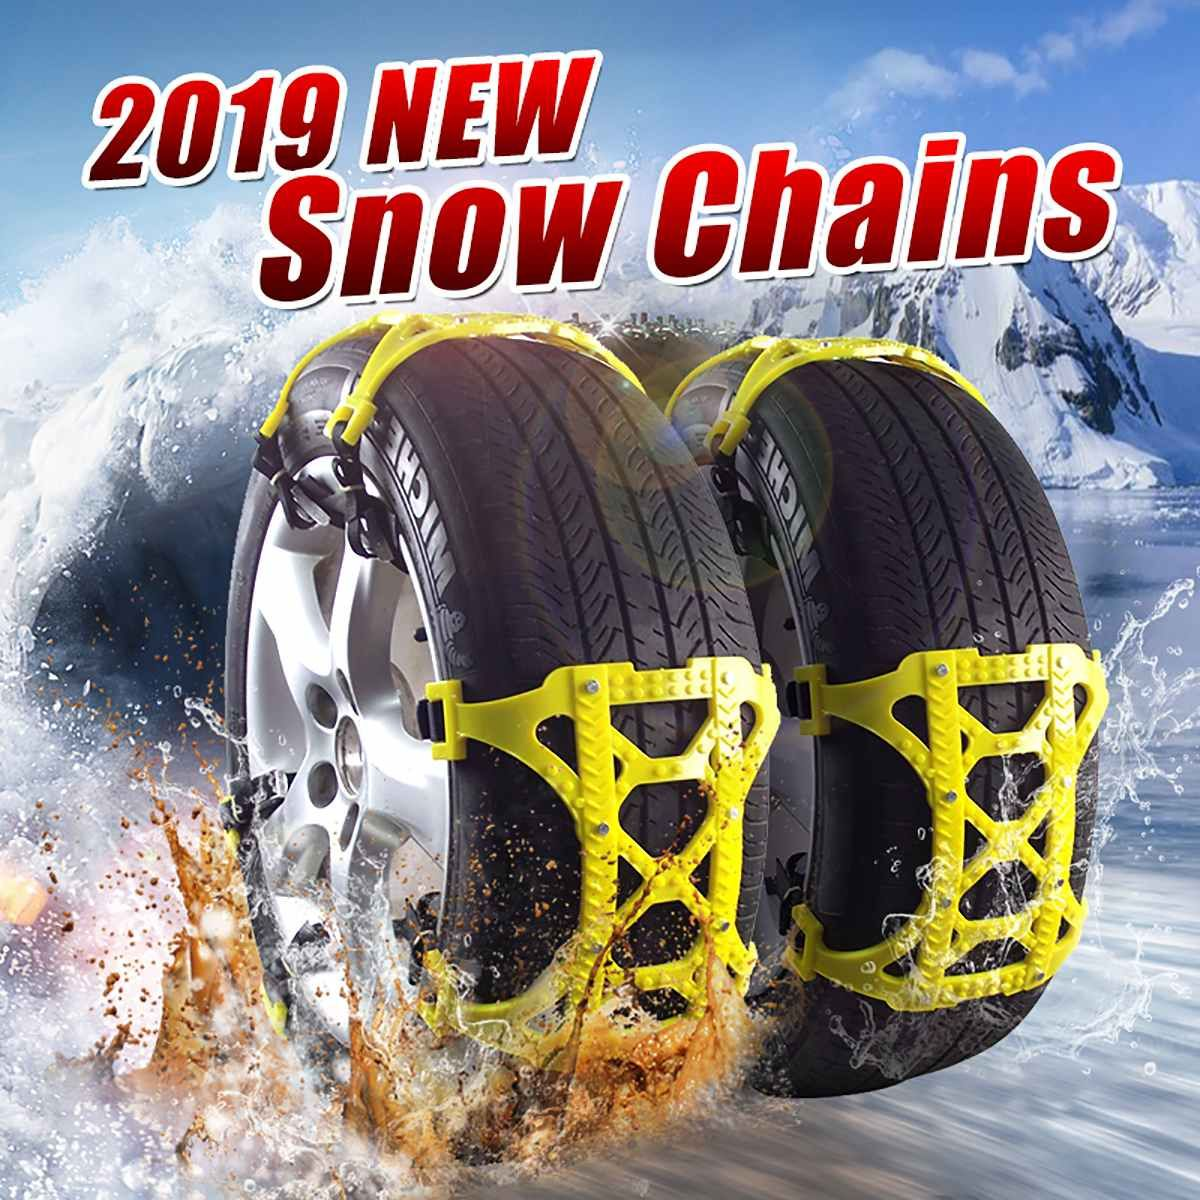 6pcs TPU Snow Chains set Universal Car Suit Tyre Winter Roadway Safety Tire Chains Snow Climbing Mud Ground Anti Slip